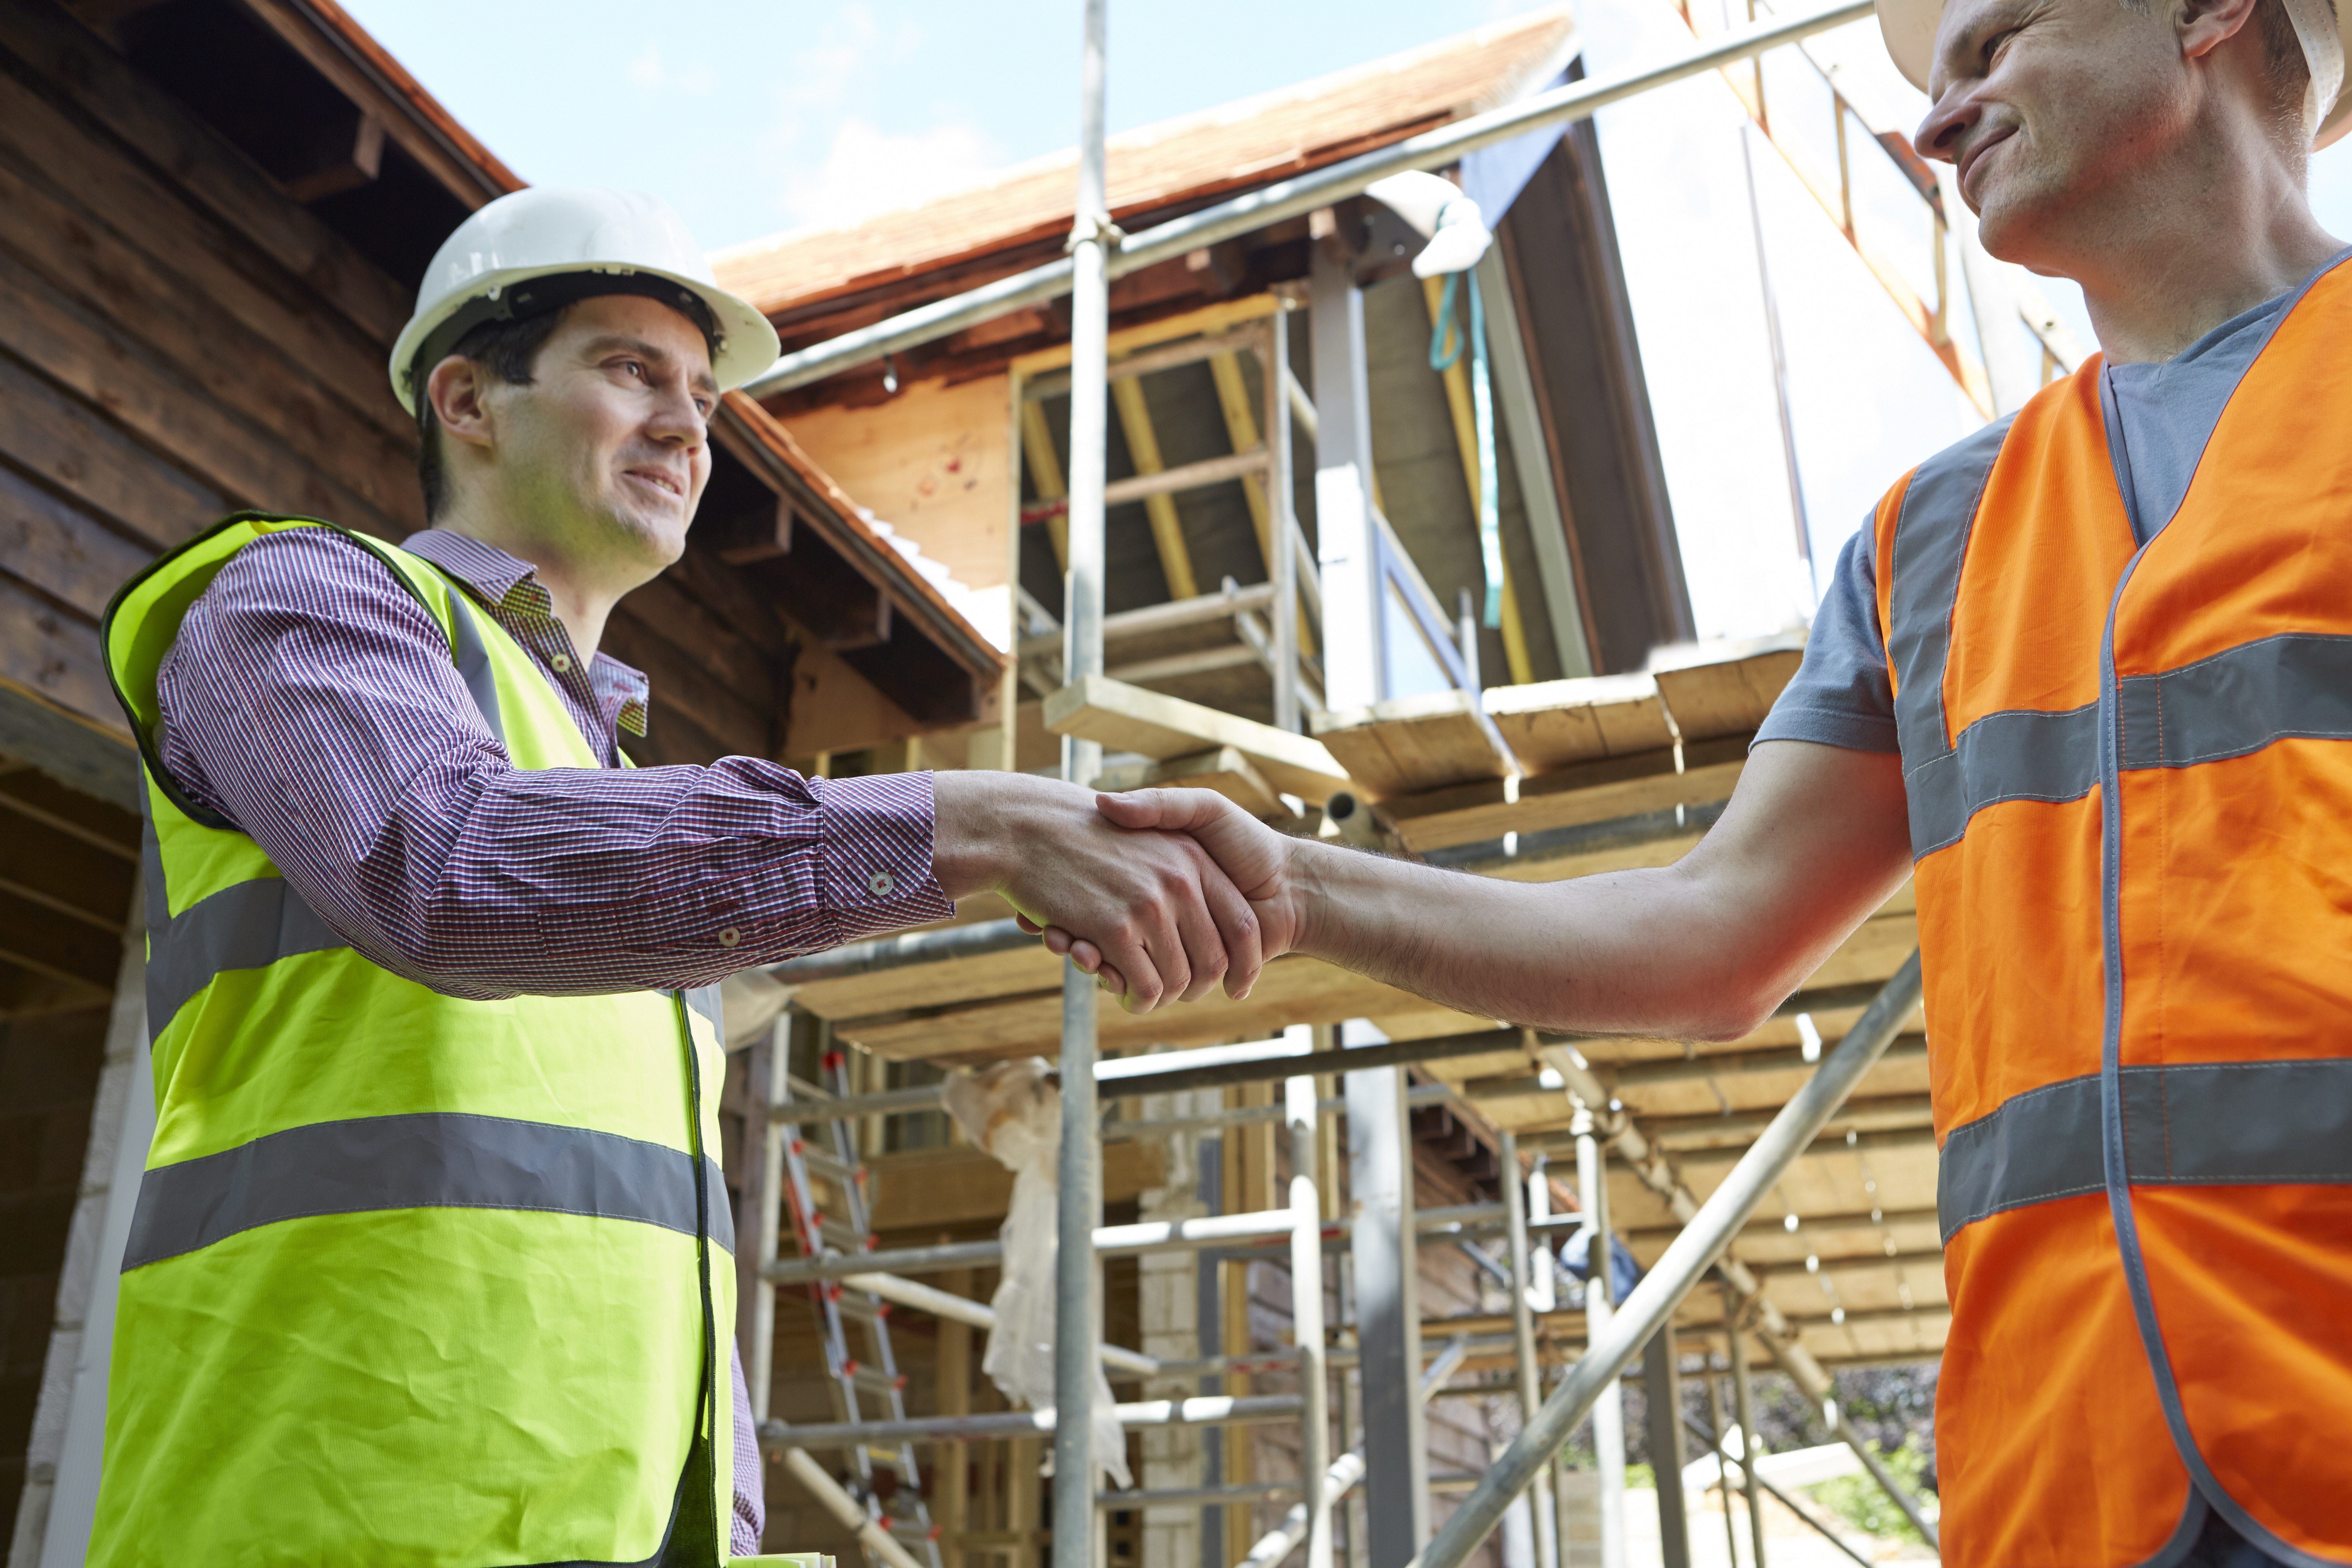 Scaffolder shaking hands with a builder